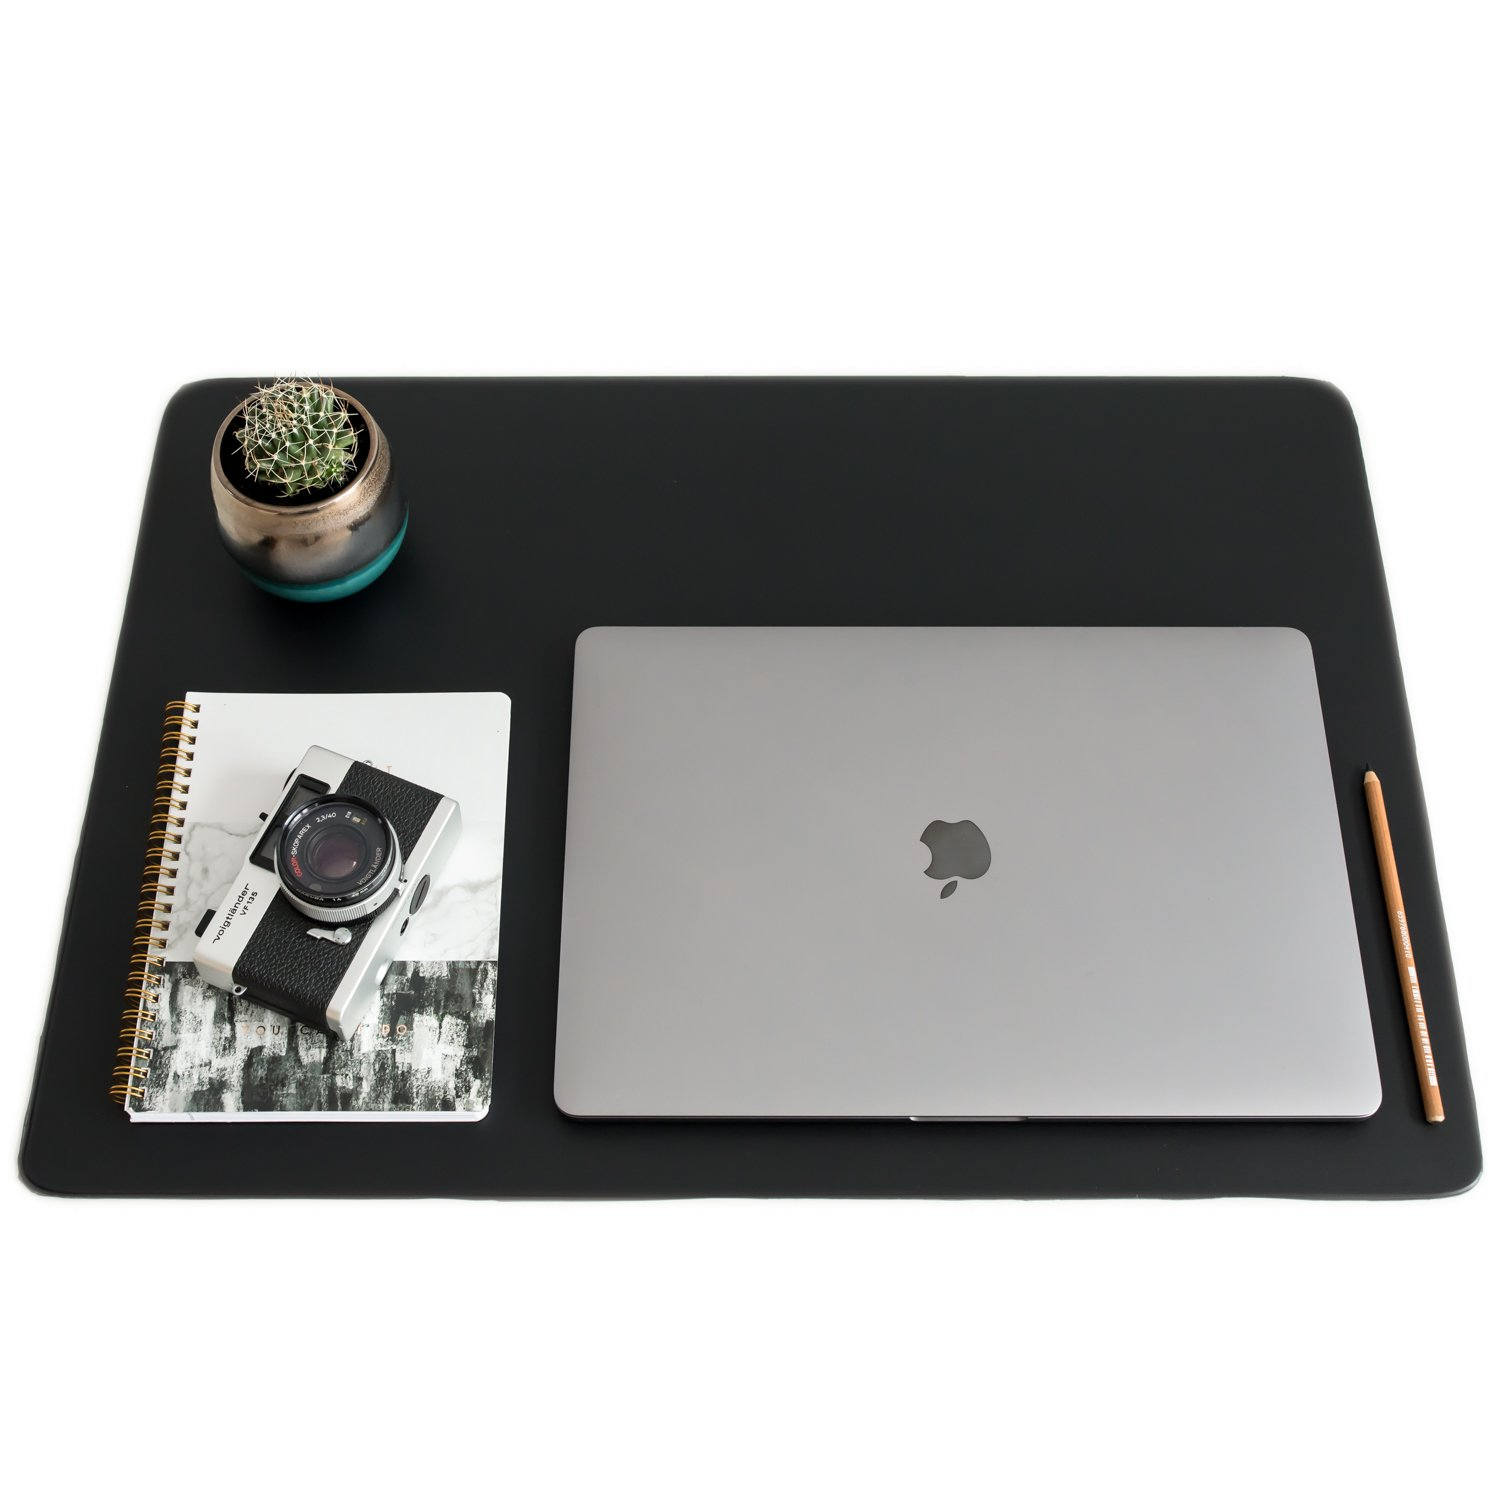 ZBRANDS // Leather Smooth Desk Mat Pad Blotter Protector 24'' x 17'', Midnight Black, Extended Non-Slip Rectangular, Laptop Keyboard Mouse Pad